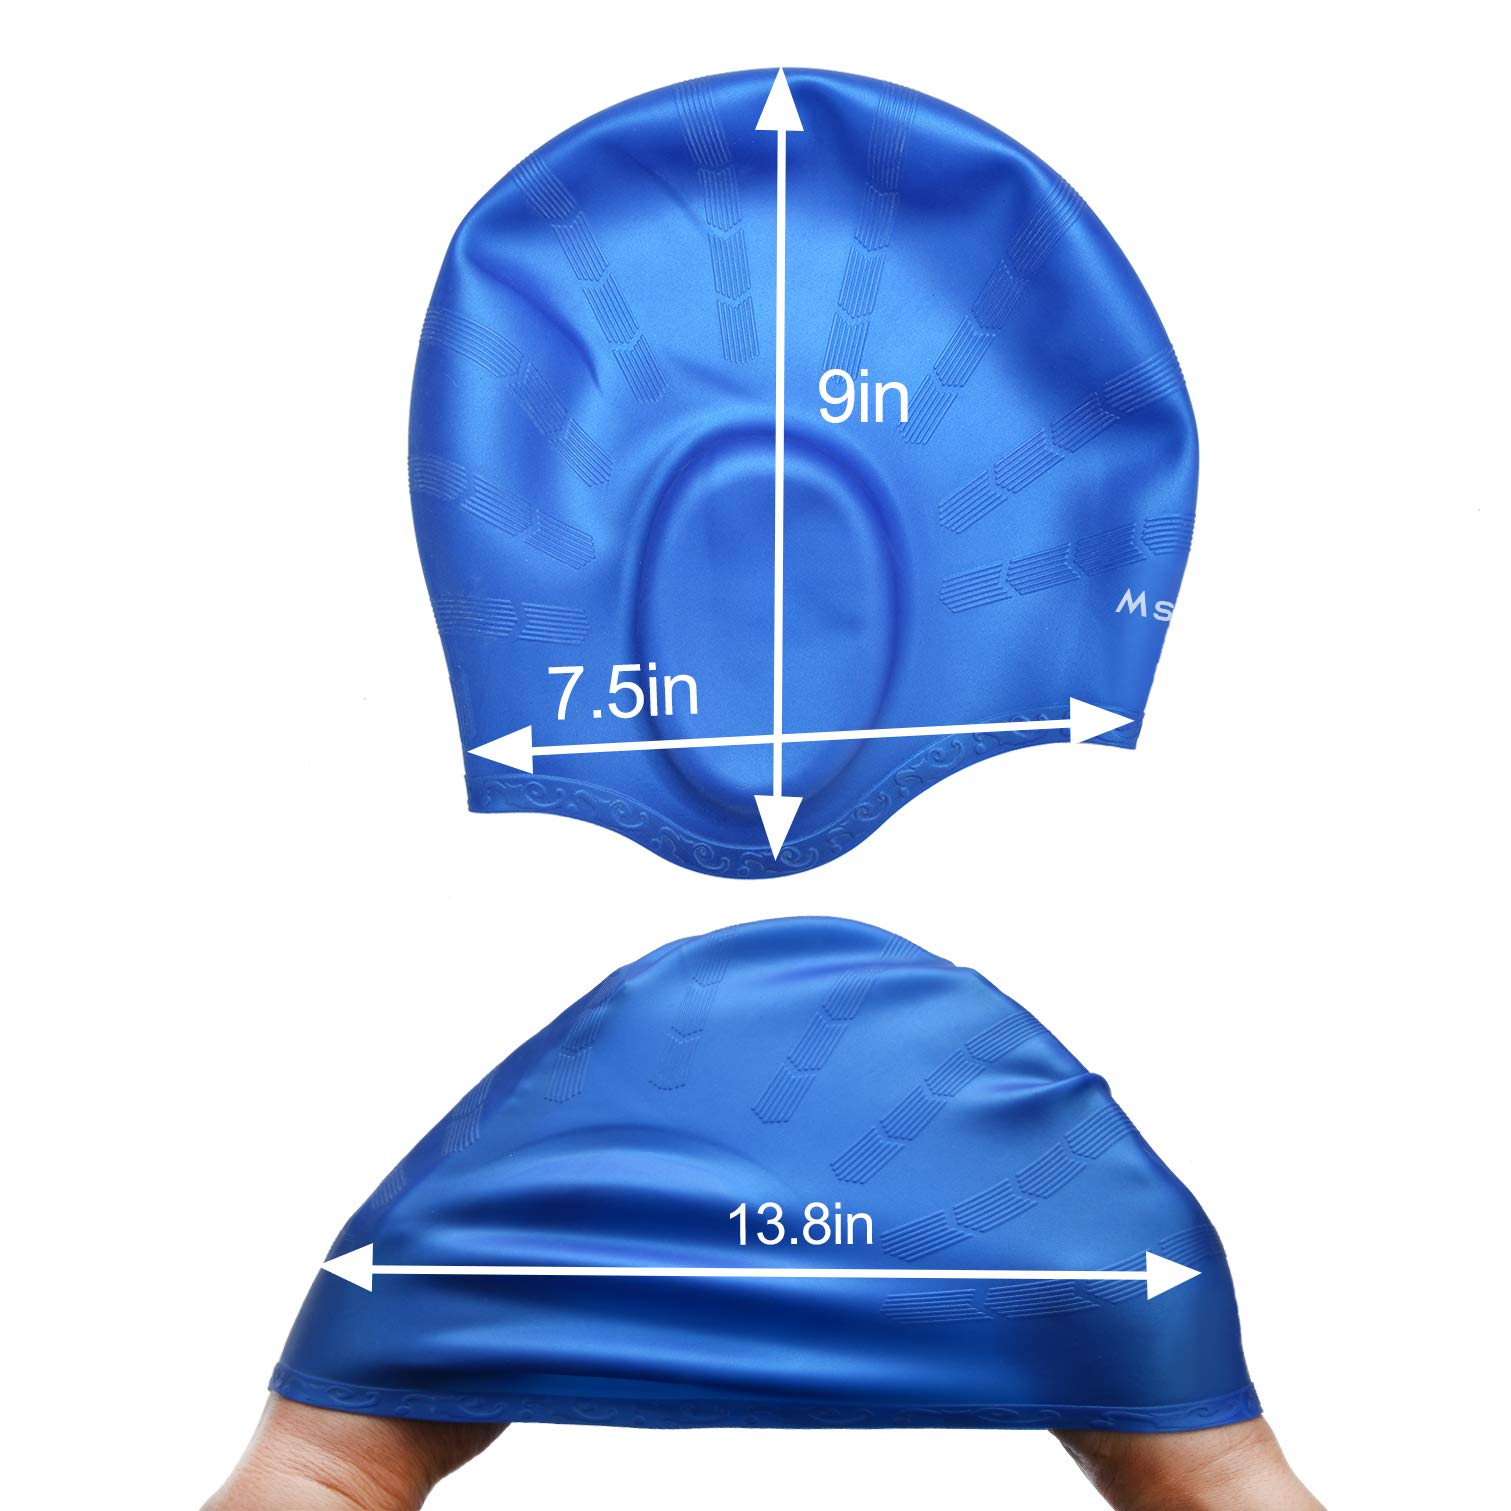 Msicyness Cover Ears Swim Caps Long Hair 100% Silicone Swimming Hat Unisex Adult Kids Reduce Water Intake Makes Your Hair Clean